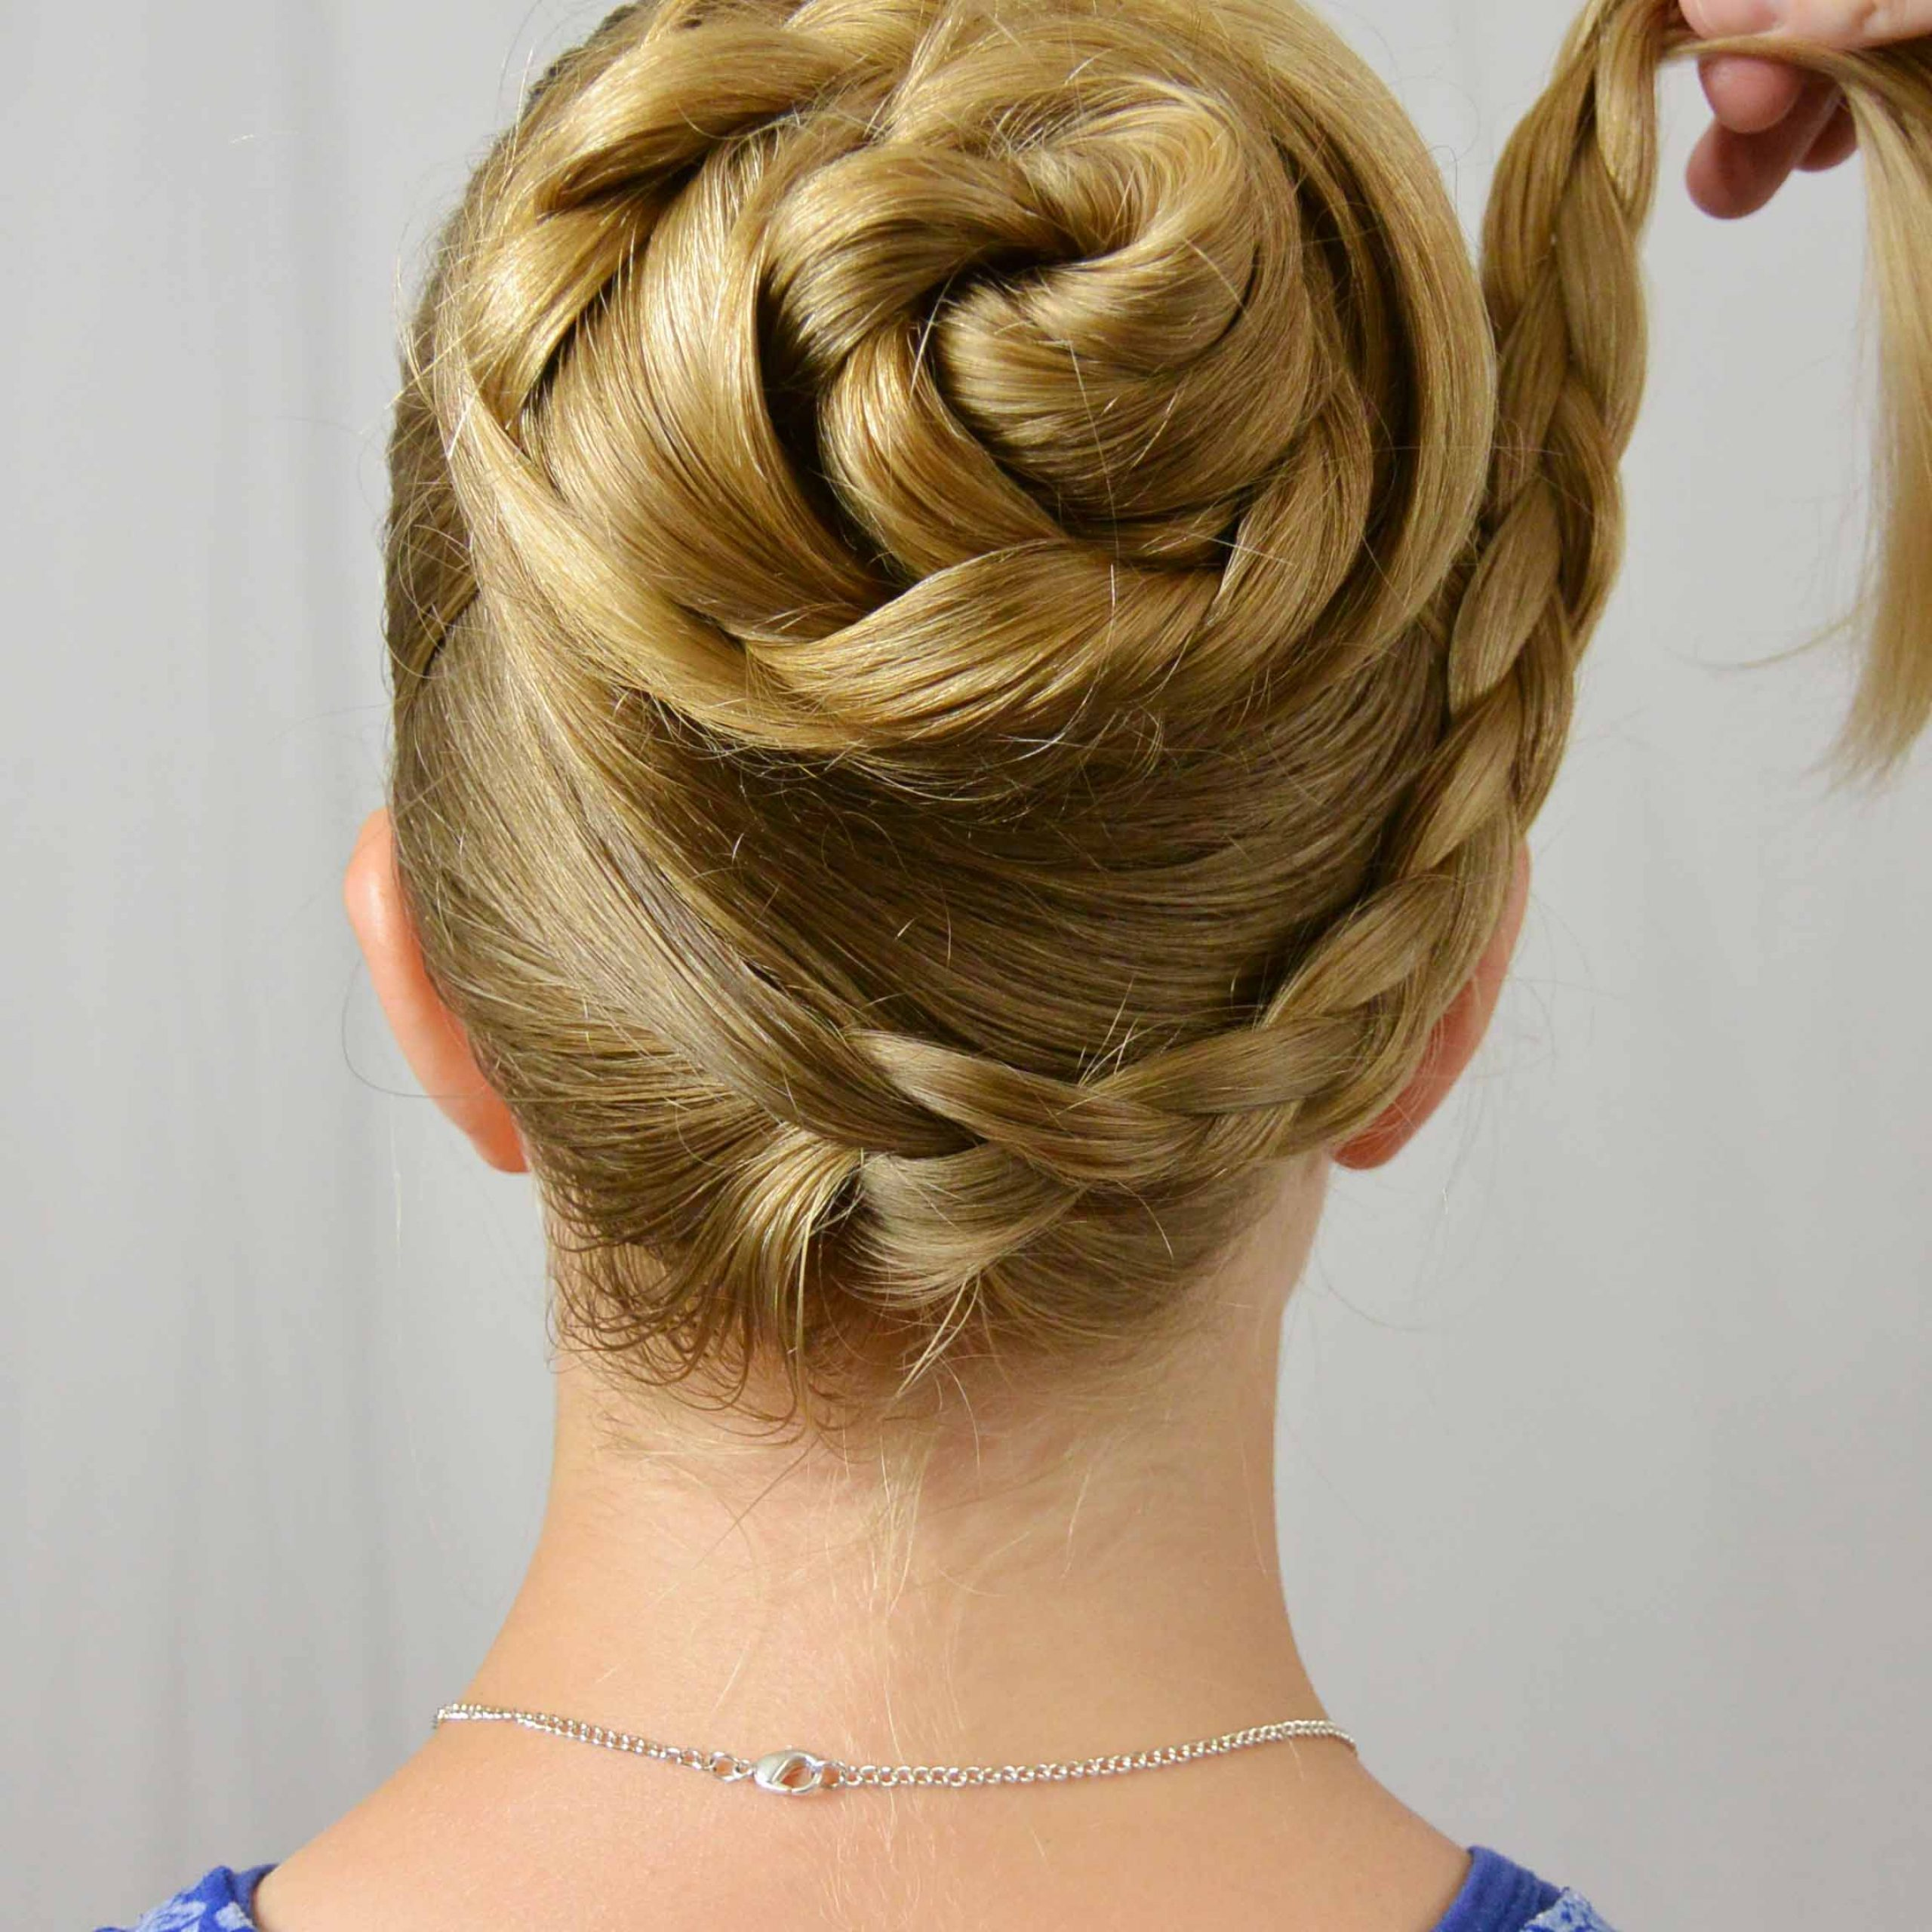 Well Liked Reverse Braided Buns Hairstyles Intended For Swept Up Braided Bun – Babes In Hairland (View 5 of 20)